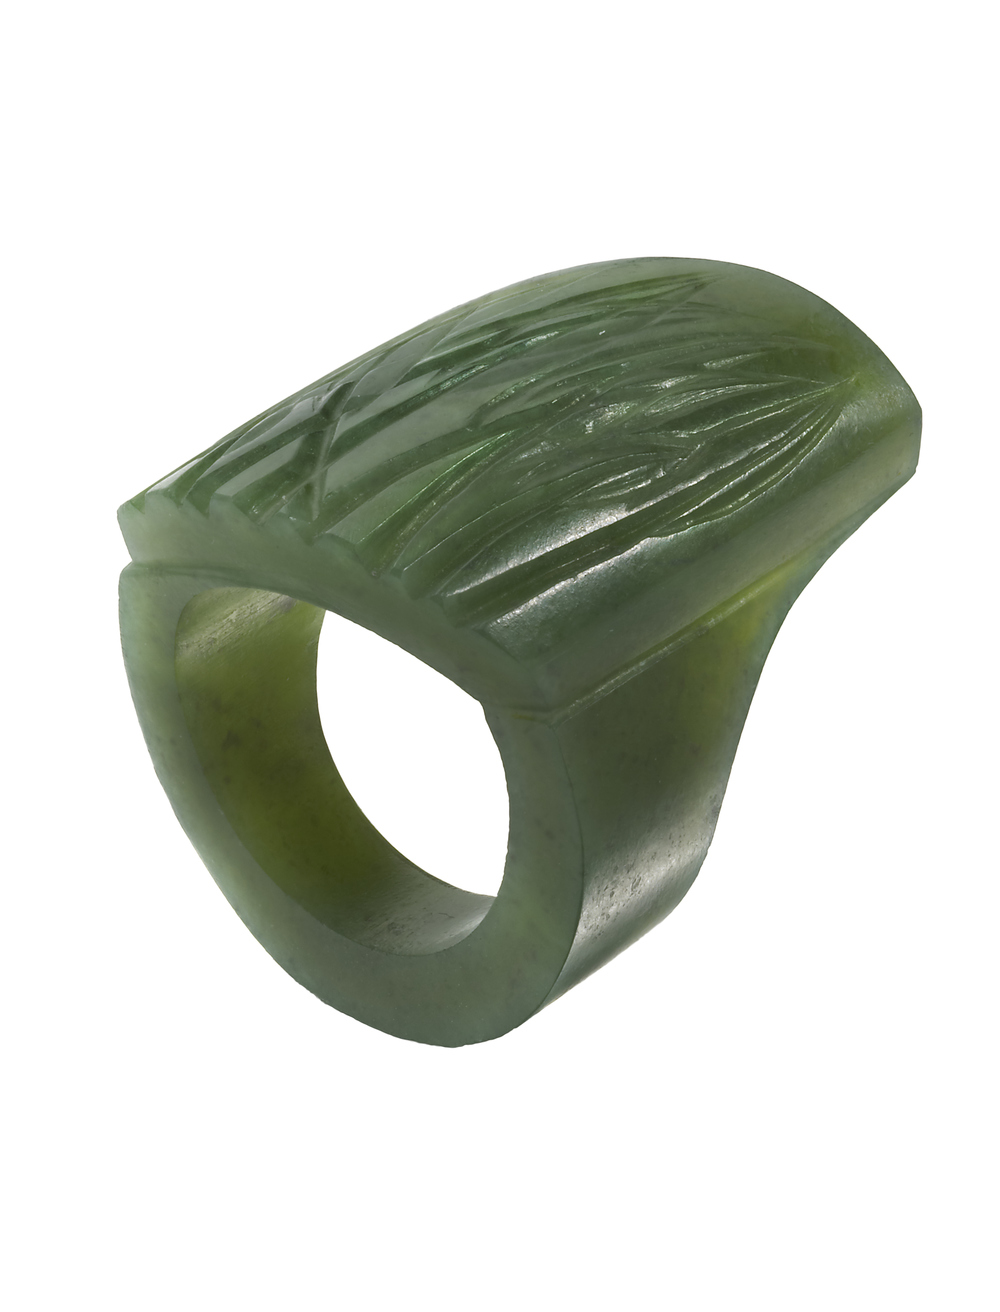 TIG Jade Ring 2nd view 2012.jpg